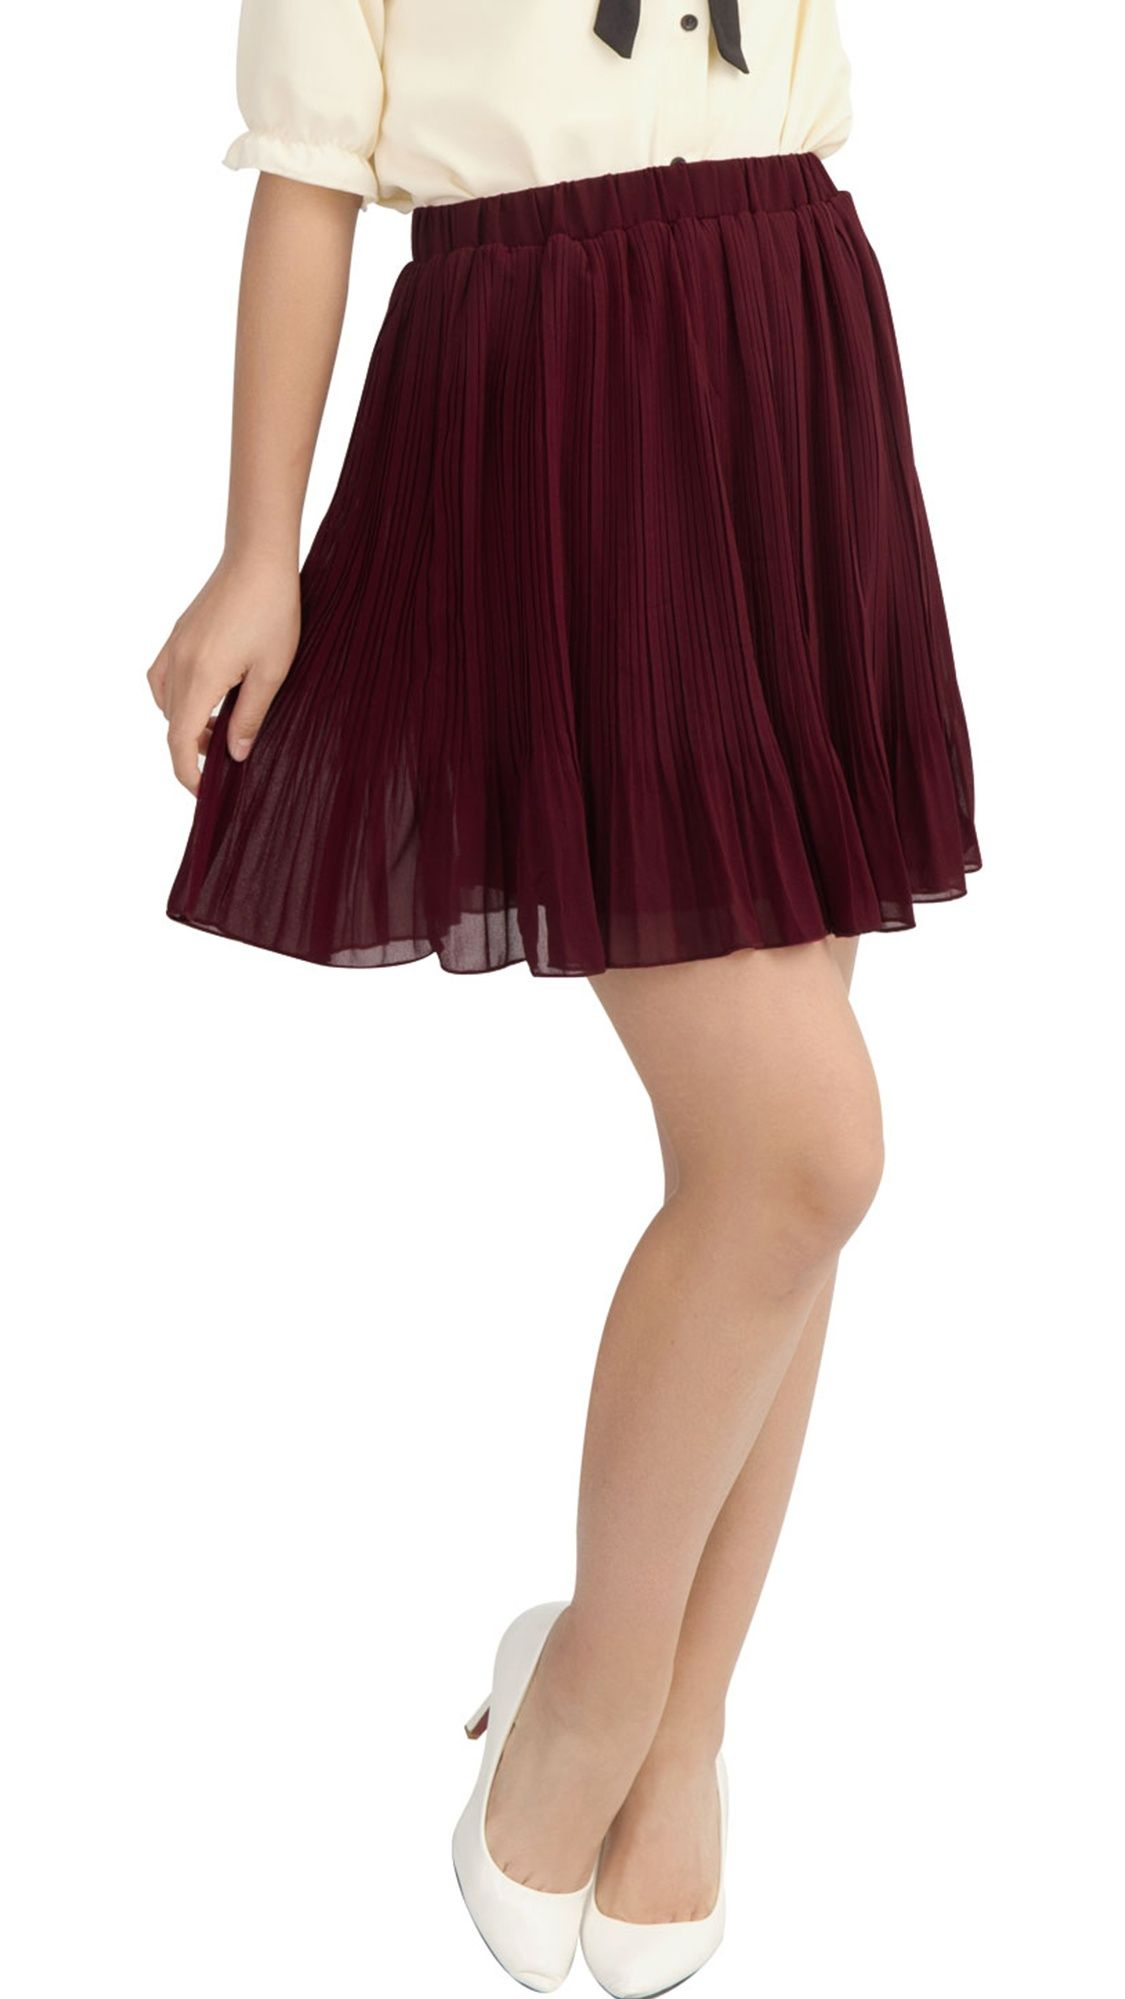 67bad108bf4 Women's Summer Cinched Waist Chiffon Pleated Mini Skirt Black (Size M / 10)  Burgundy S (US 6)#Waist, #Chiffon, #Pleated